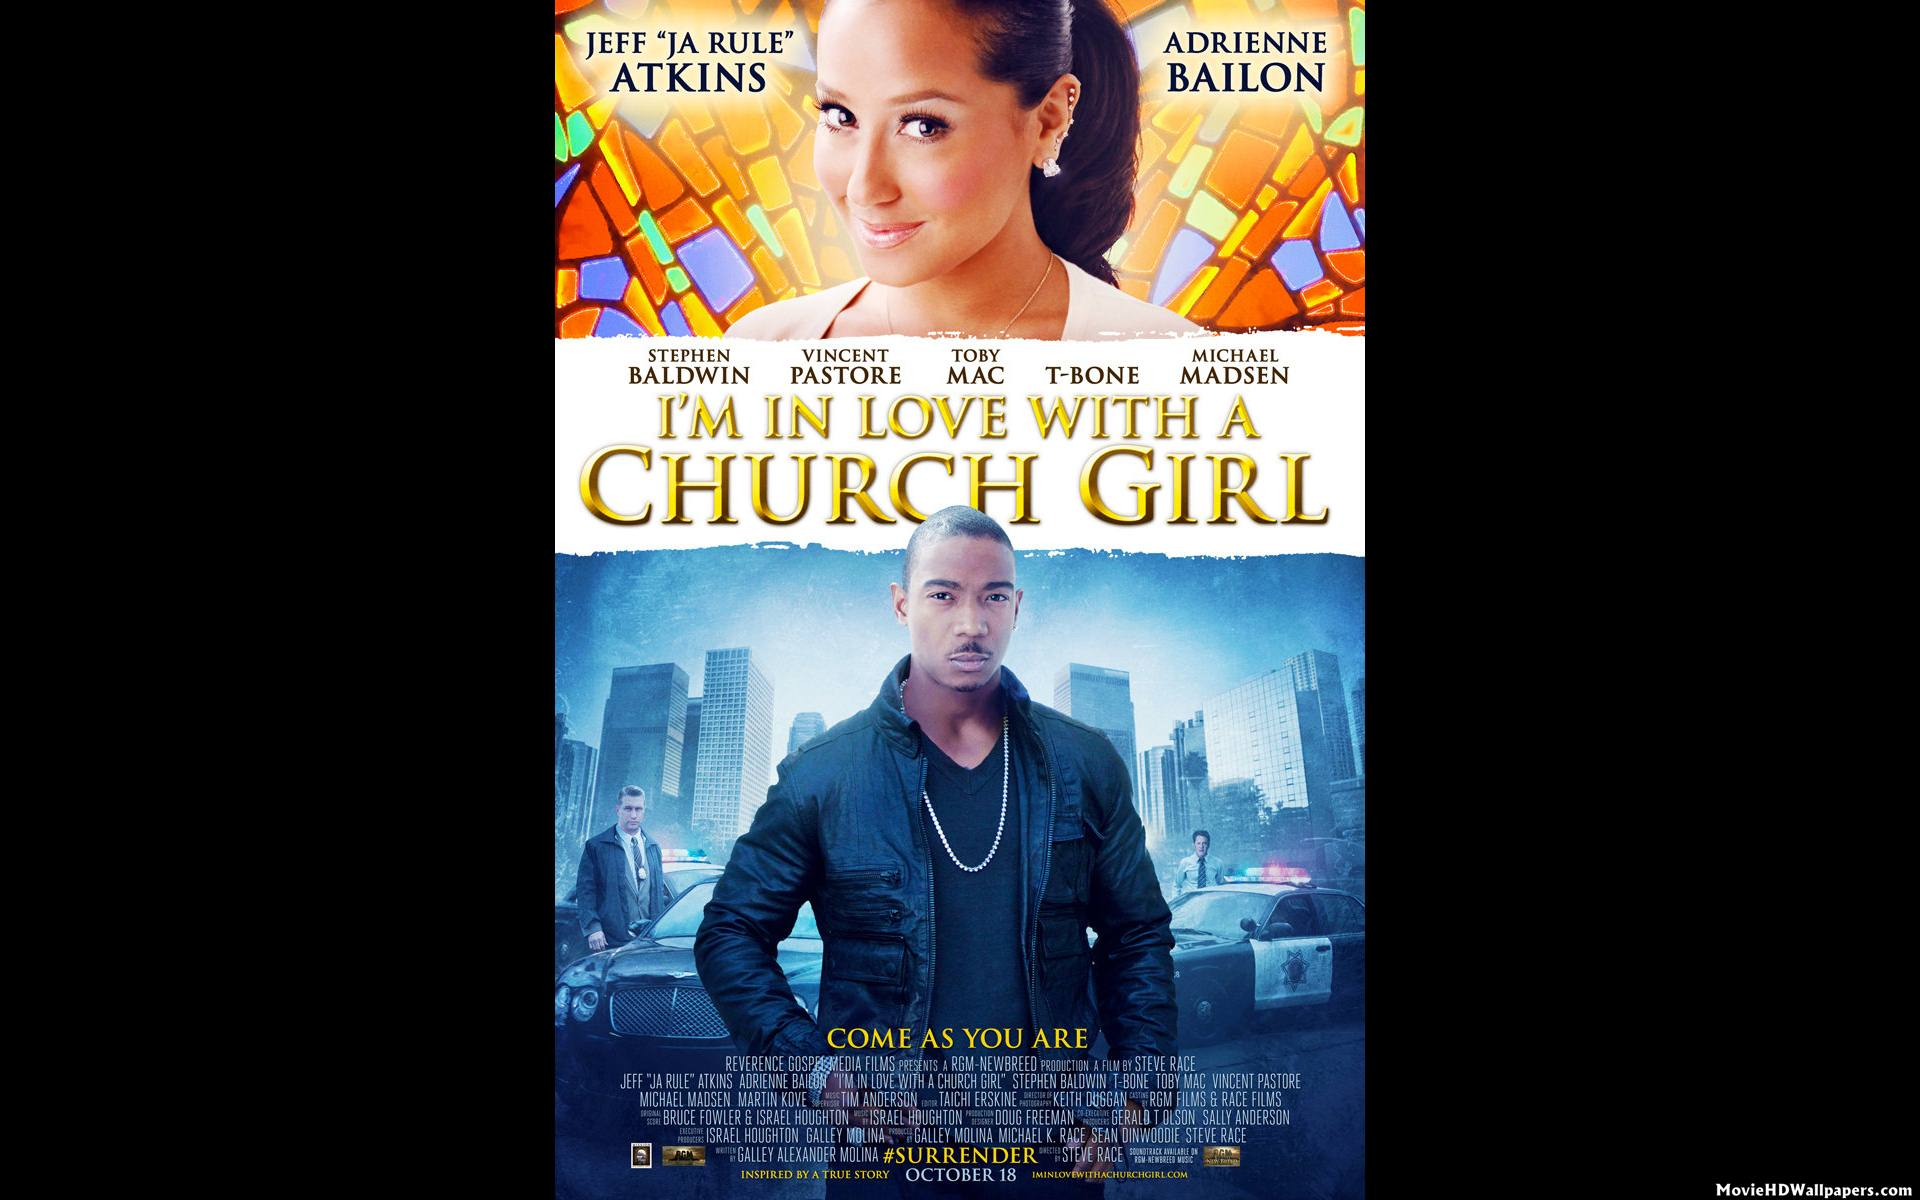 Dating a church girl movie